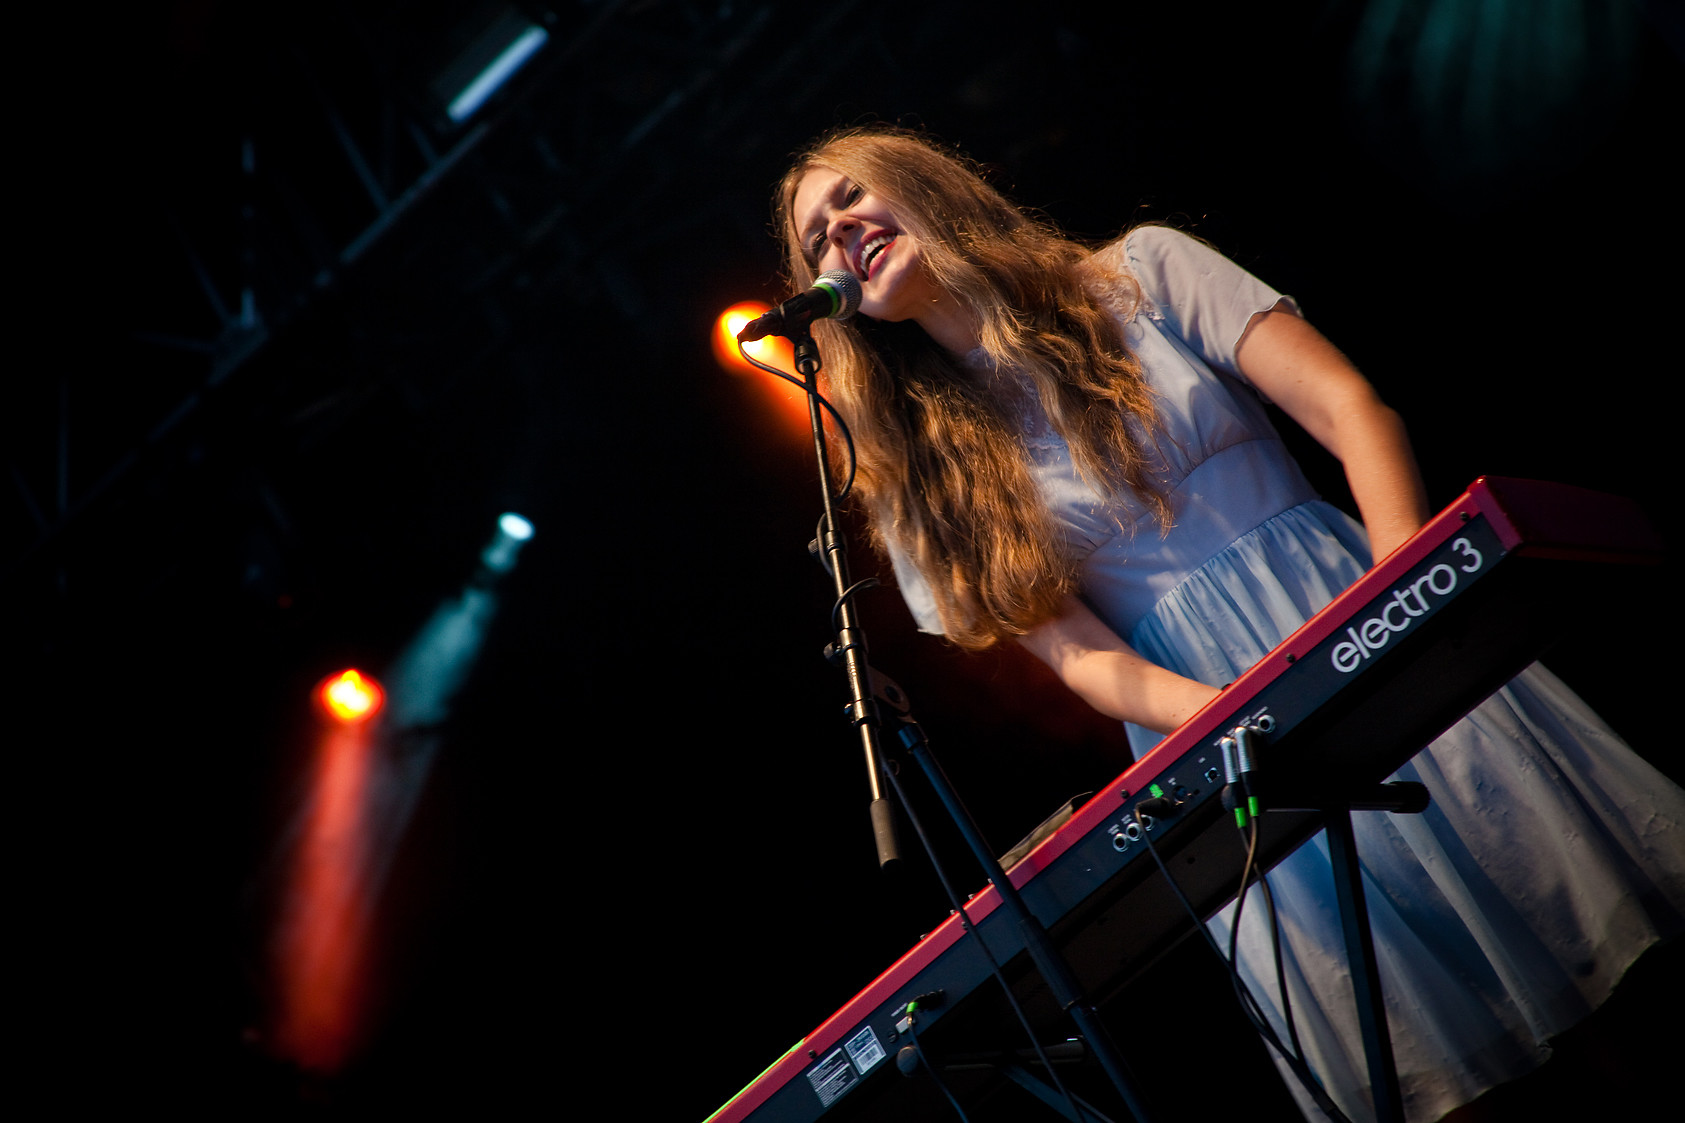 first aid kit // pstereo //2012